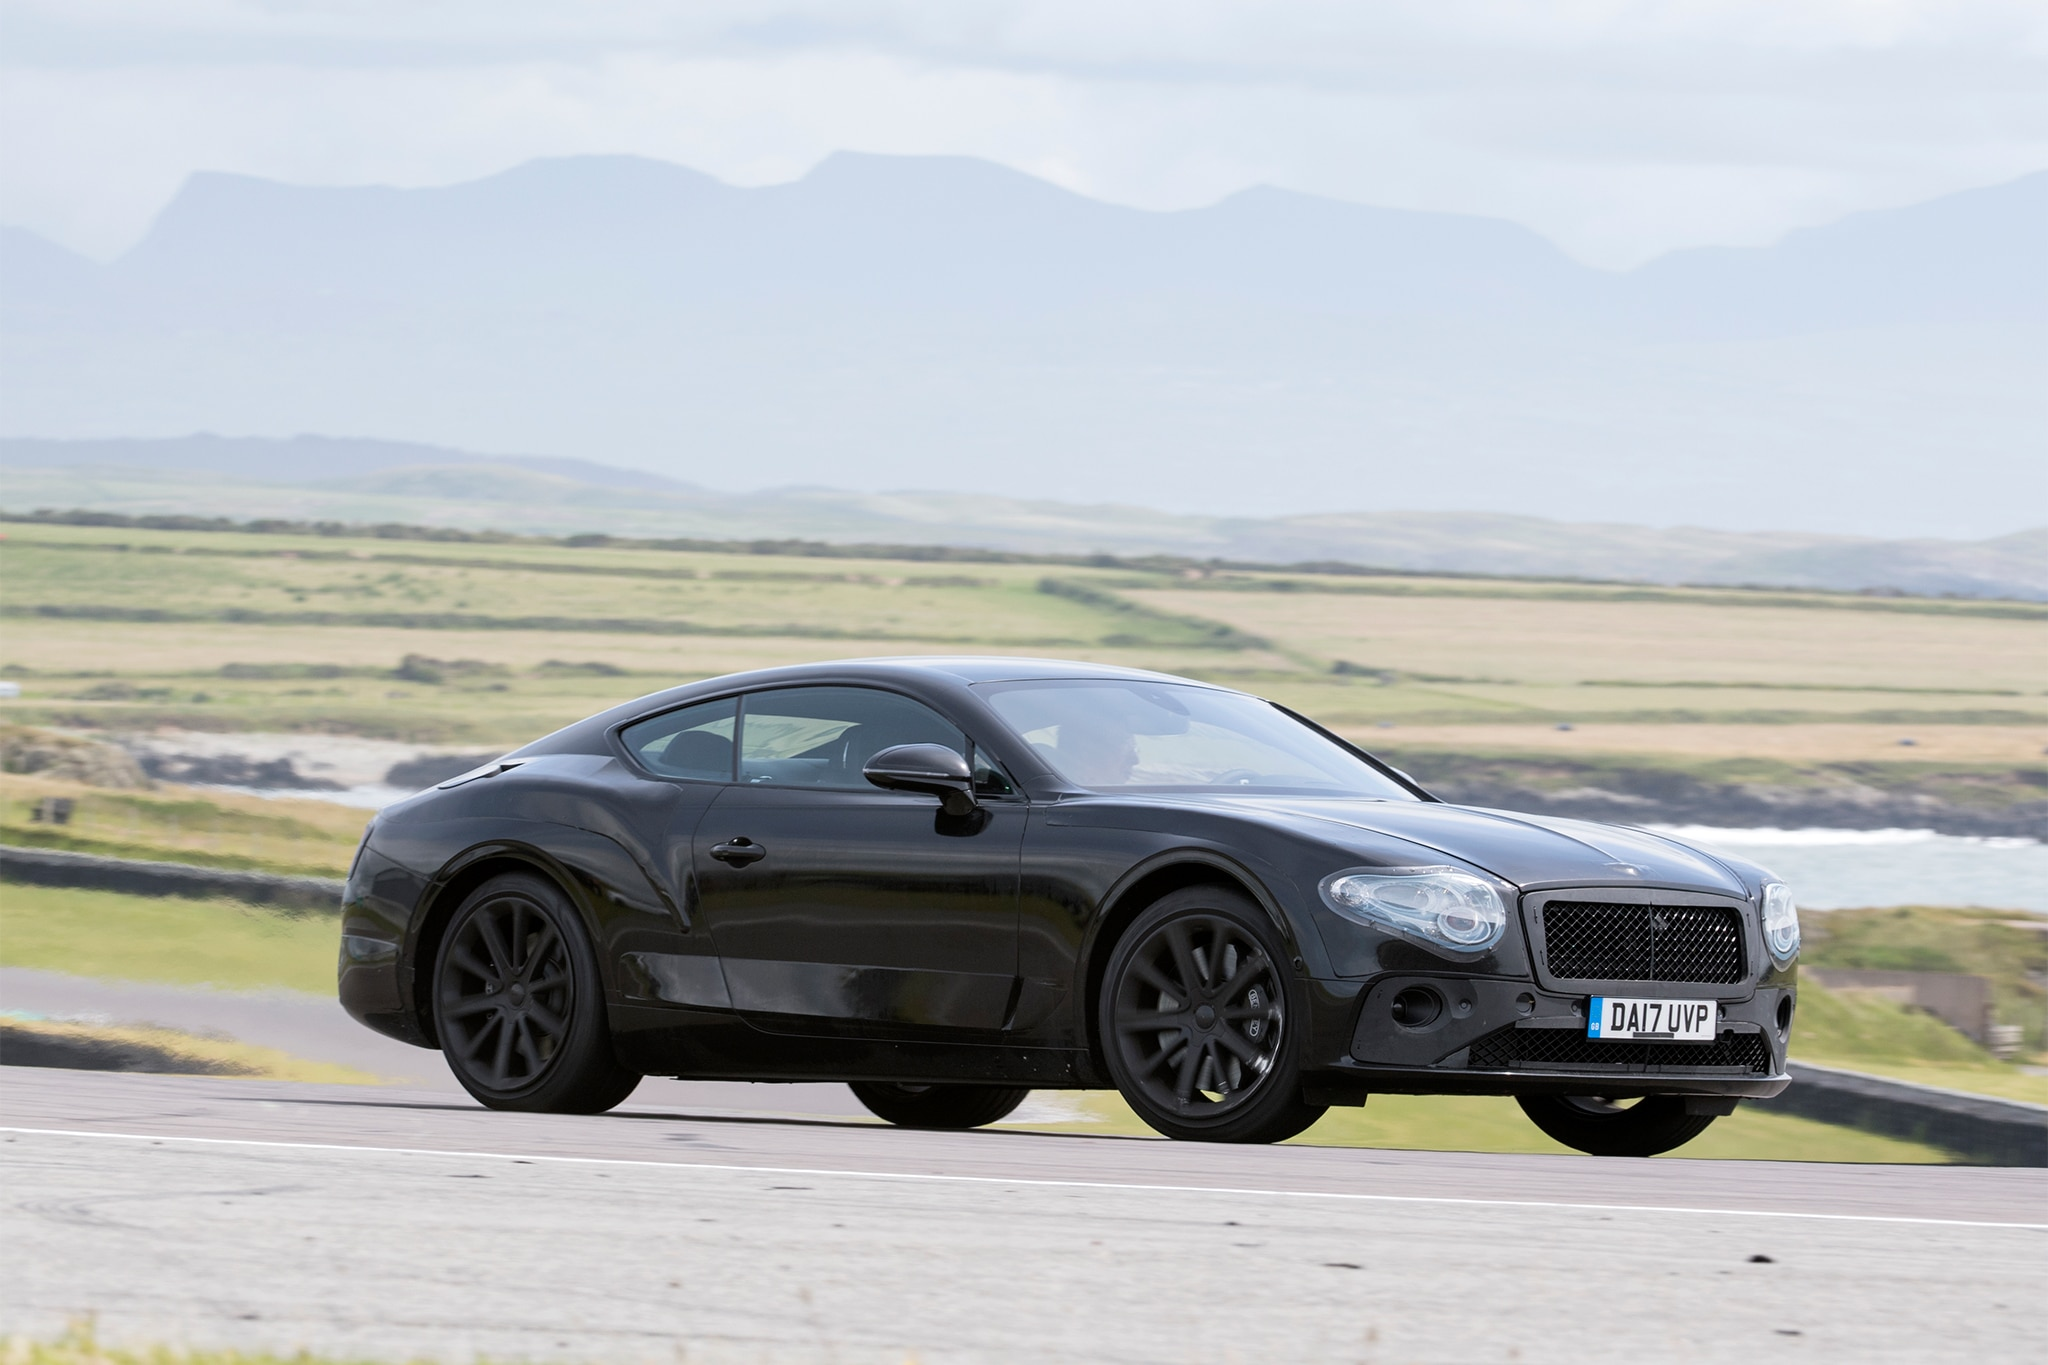 First Drive: 2018 Bentley Continental GT Prototype